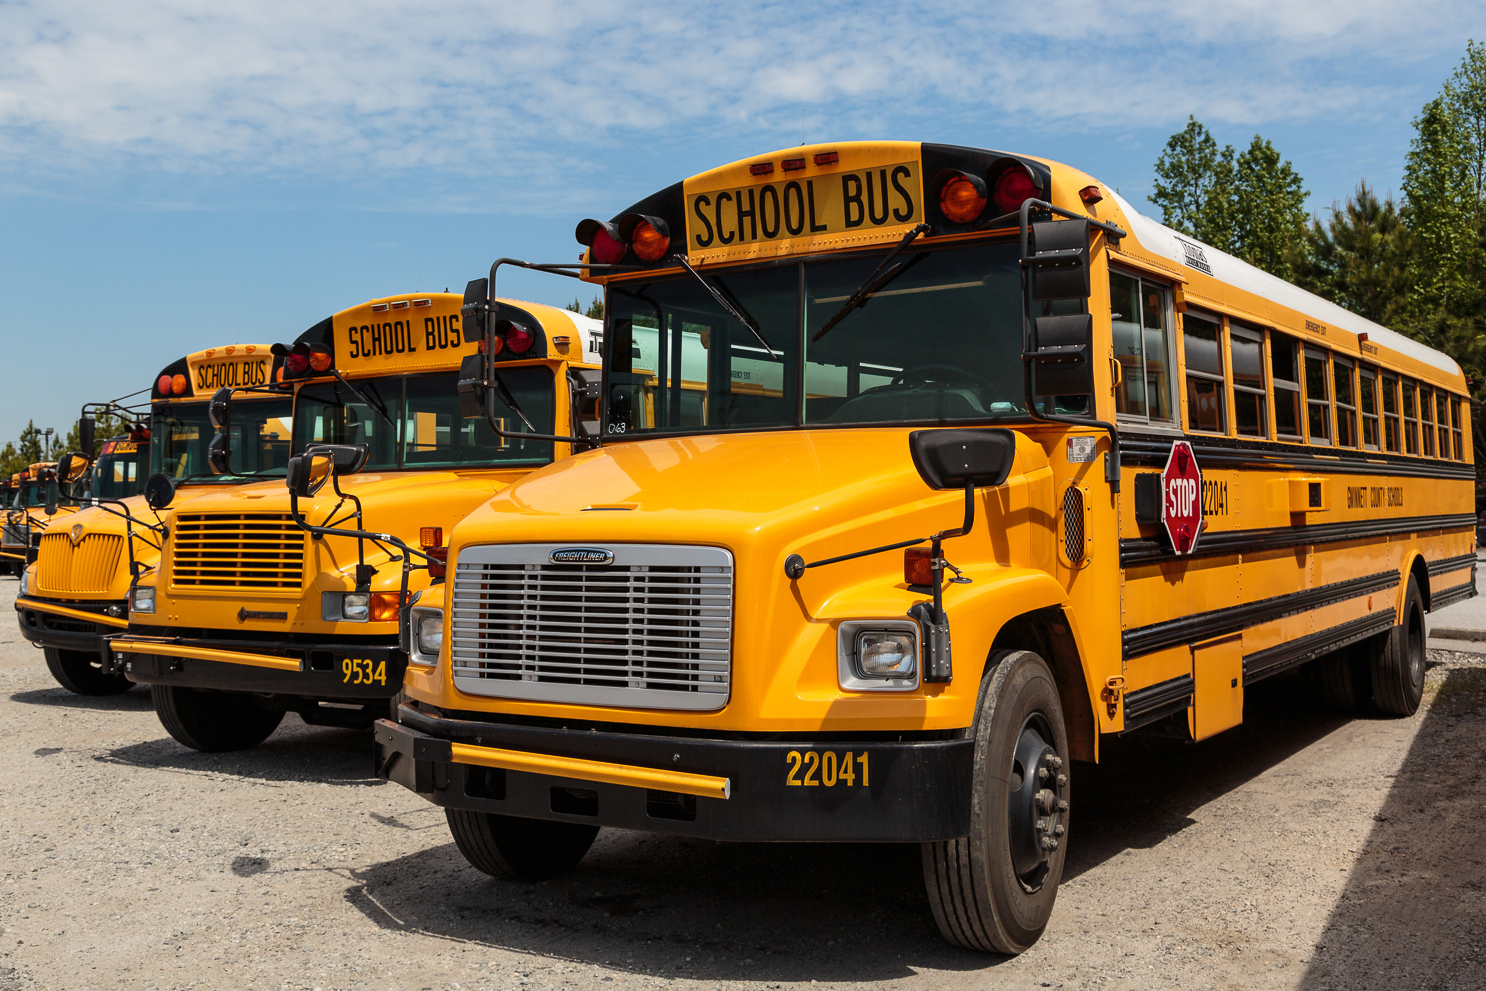 Row of schoolbuses